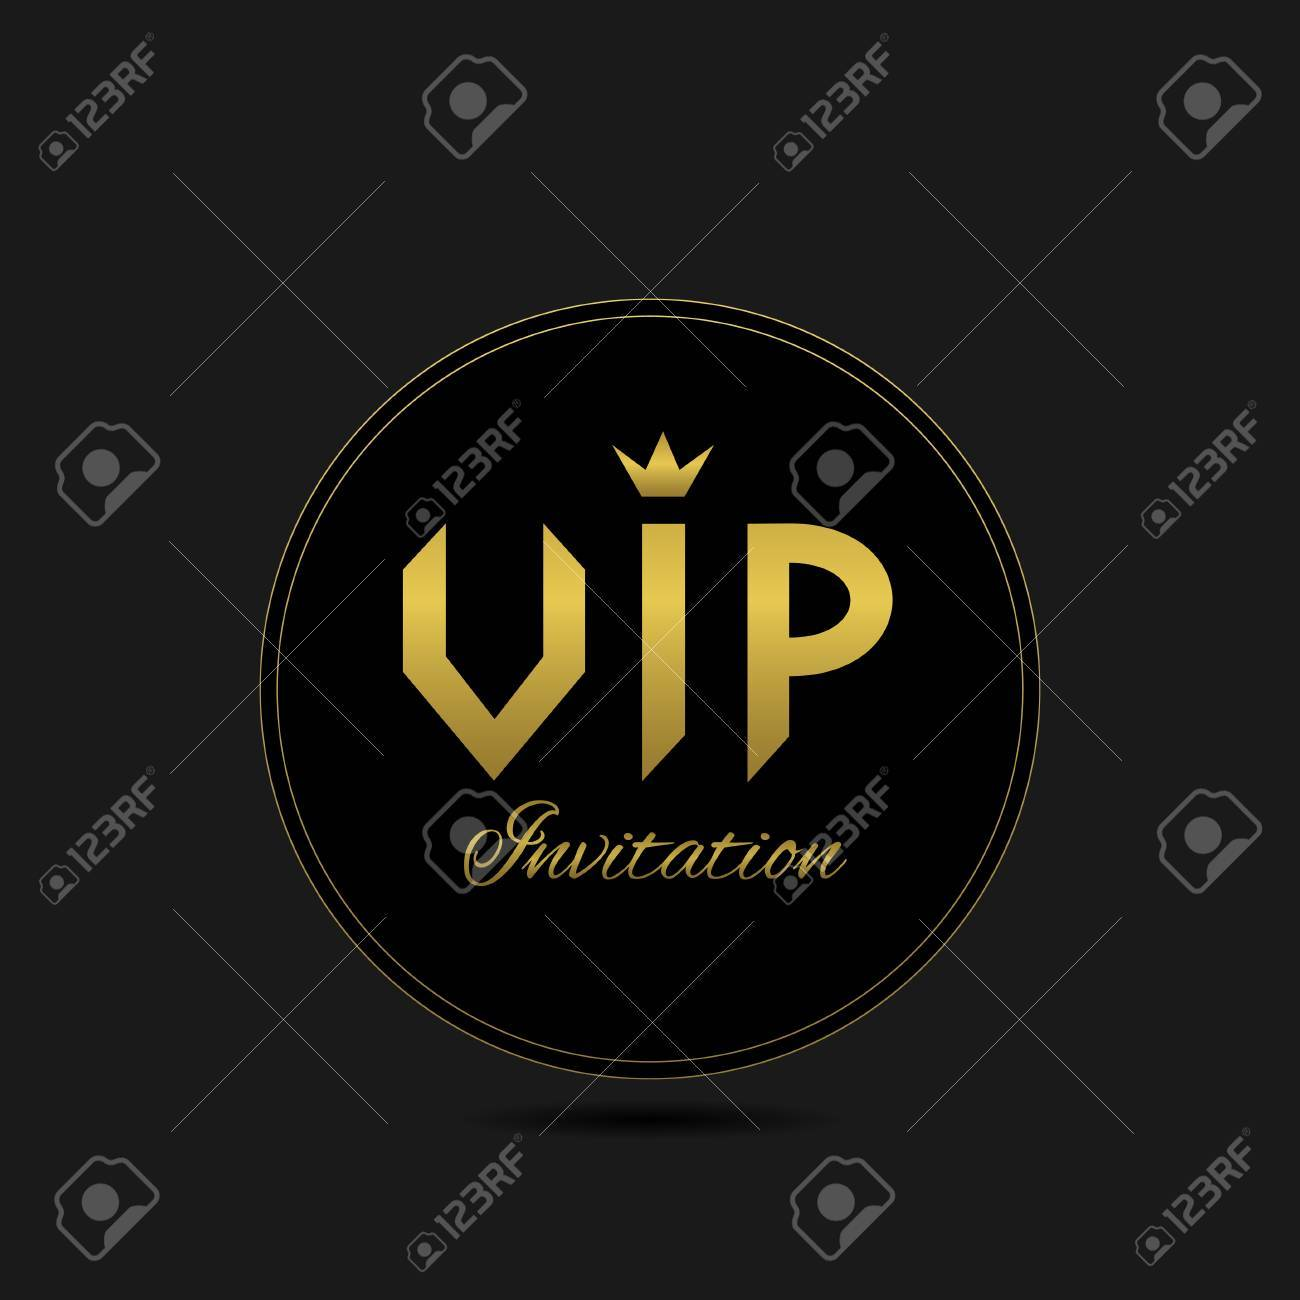 Black vip invitation card for celebrity luxury symbol vector black vip invitation card for celebrity luxury symbol vector illustration stock vector 51836315 stopboris Image collections